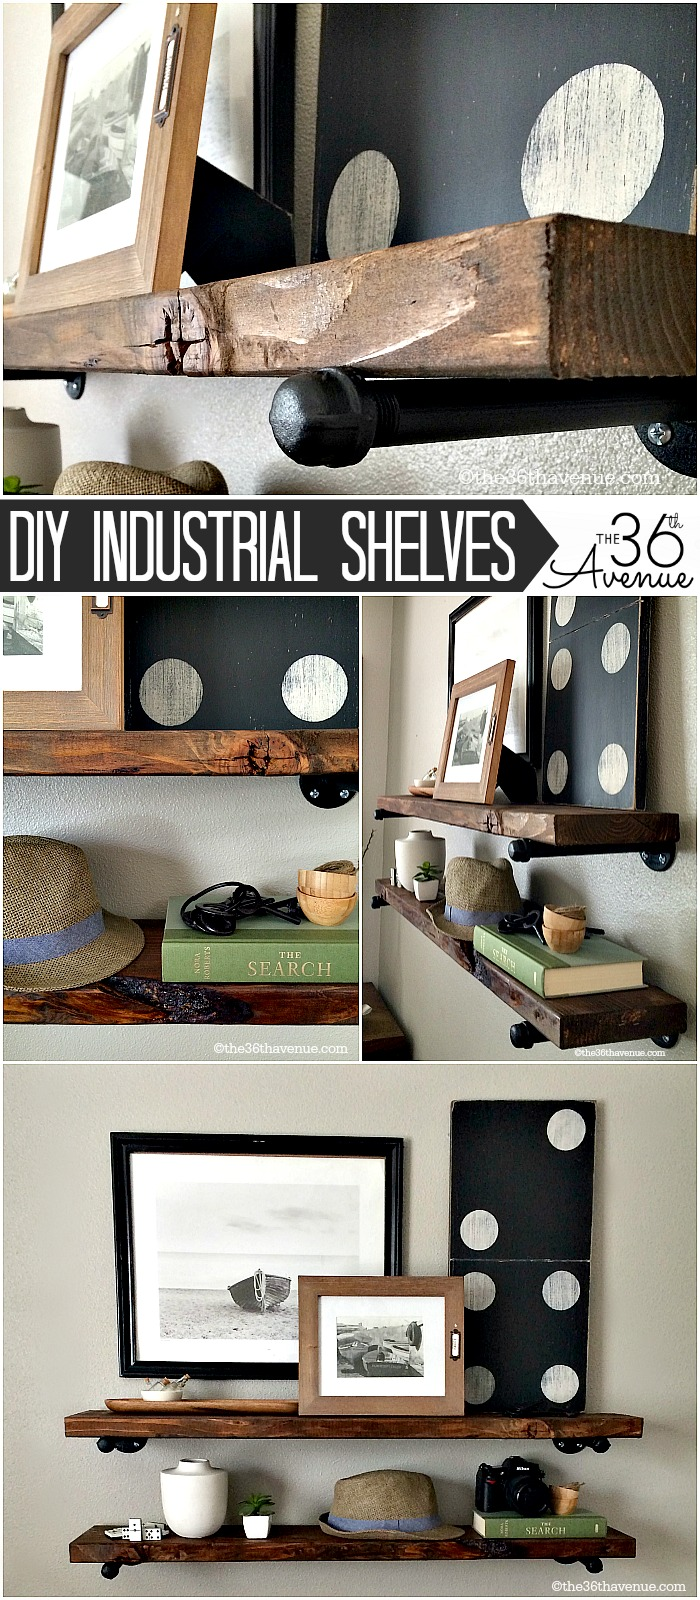 DIY Industrial Shelving the36thavenue.com